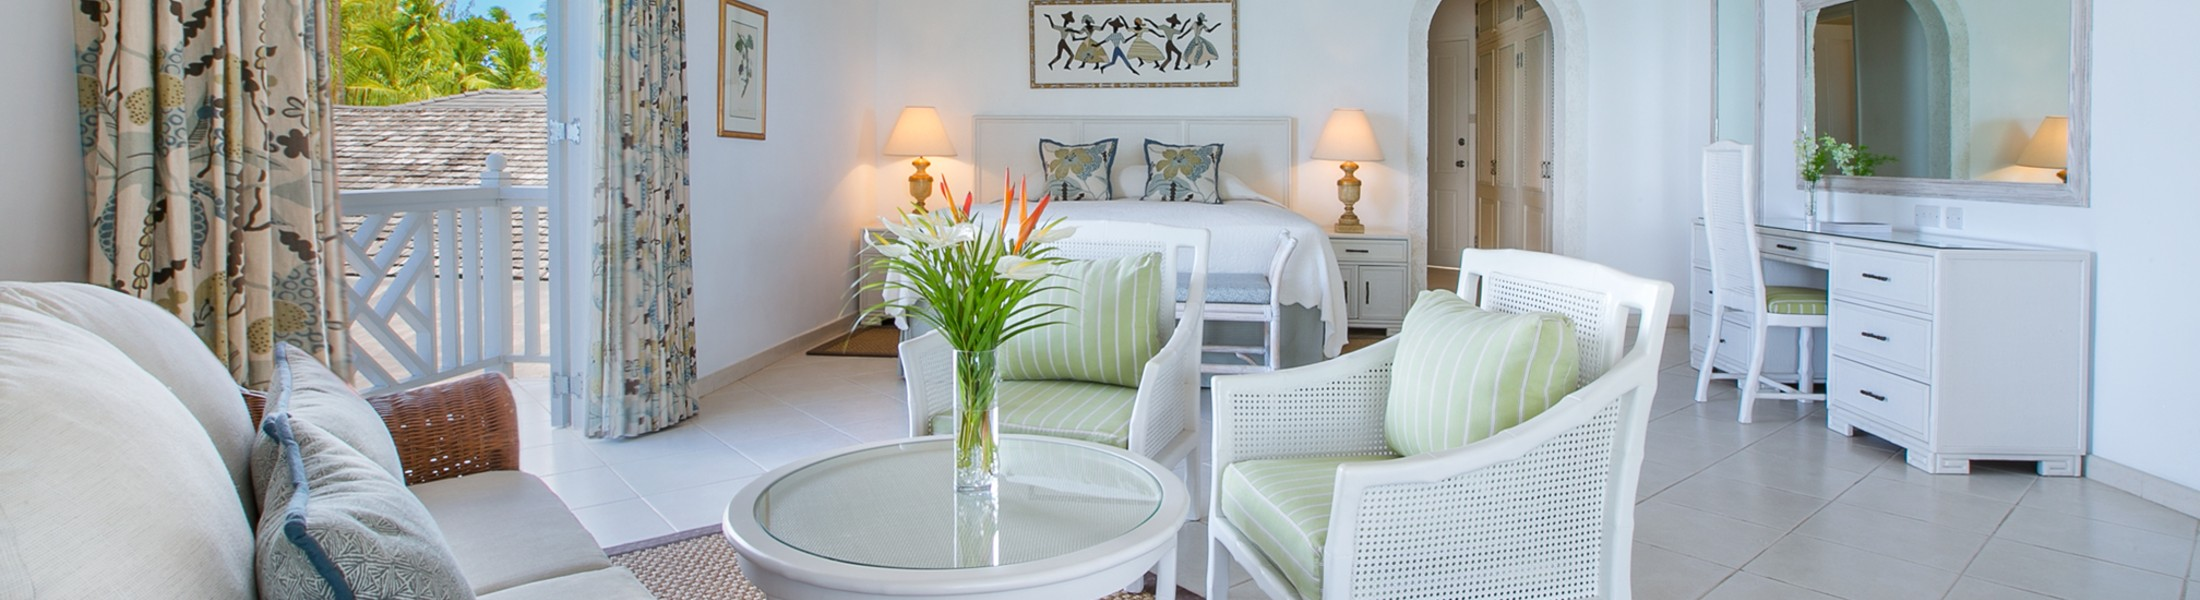 Living area of the Luxury Junior Suite at Coral Reef Club in Barbados